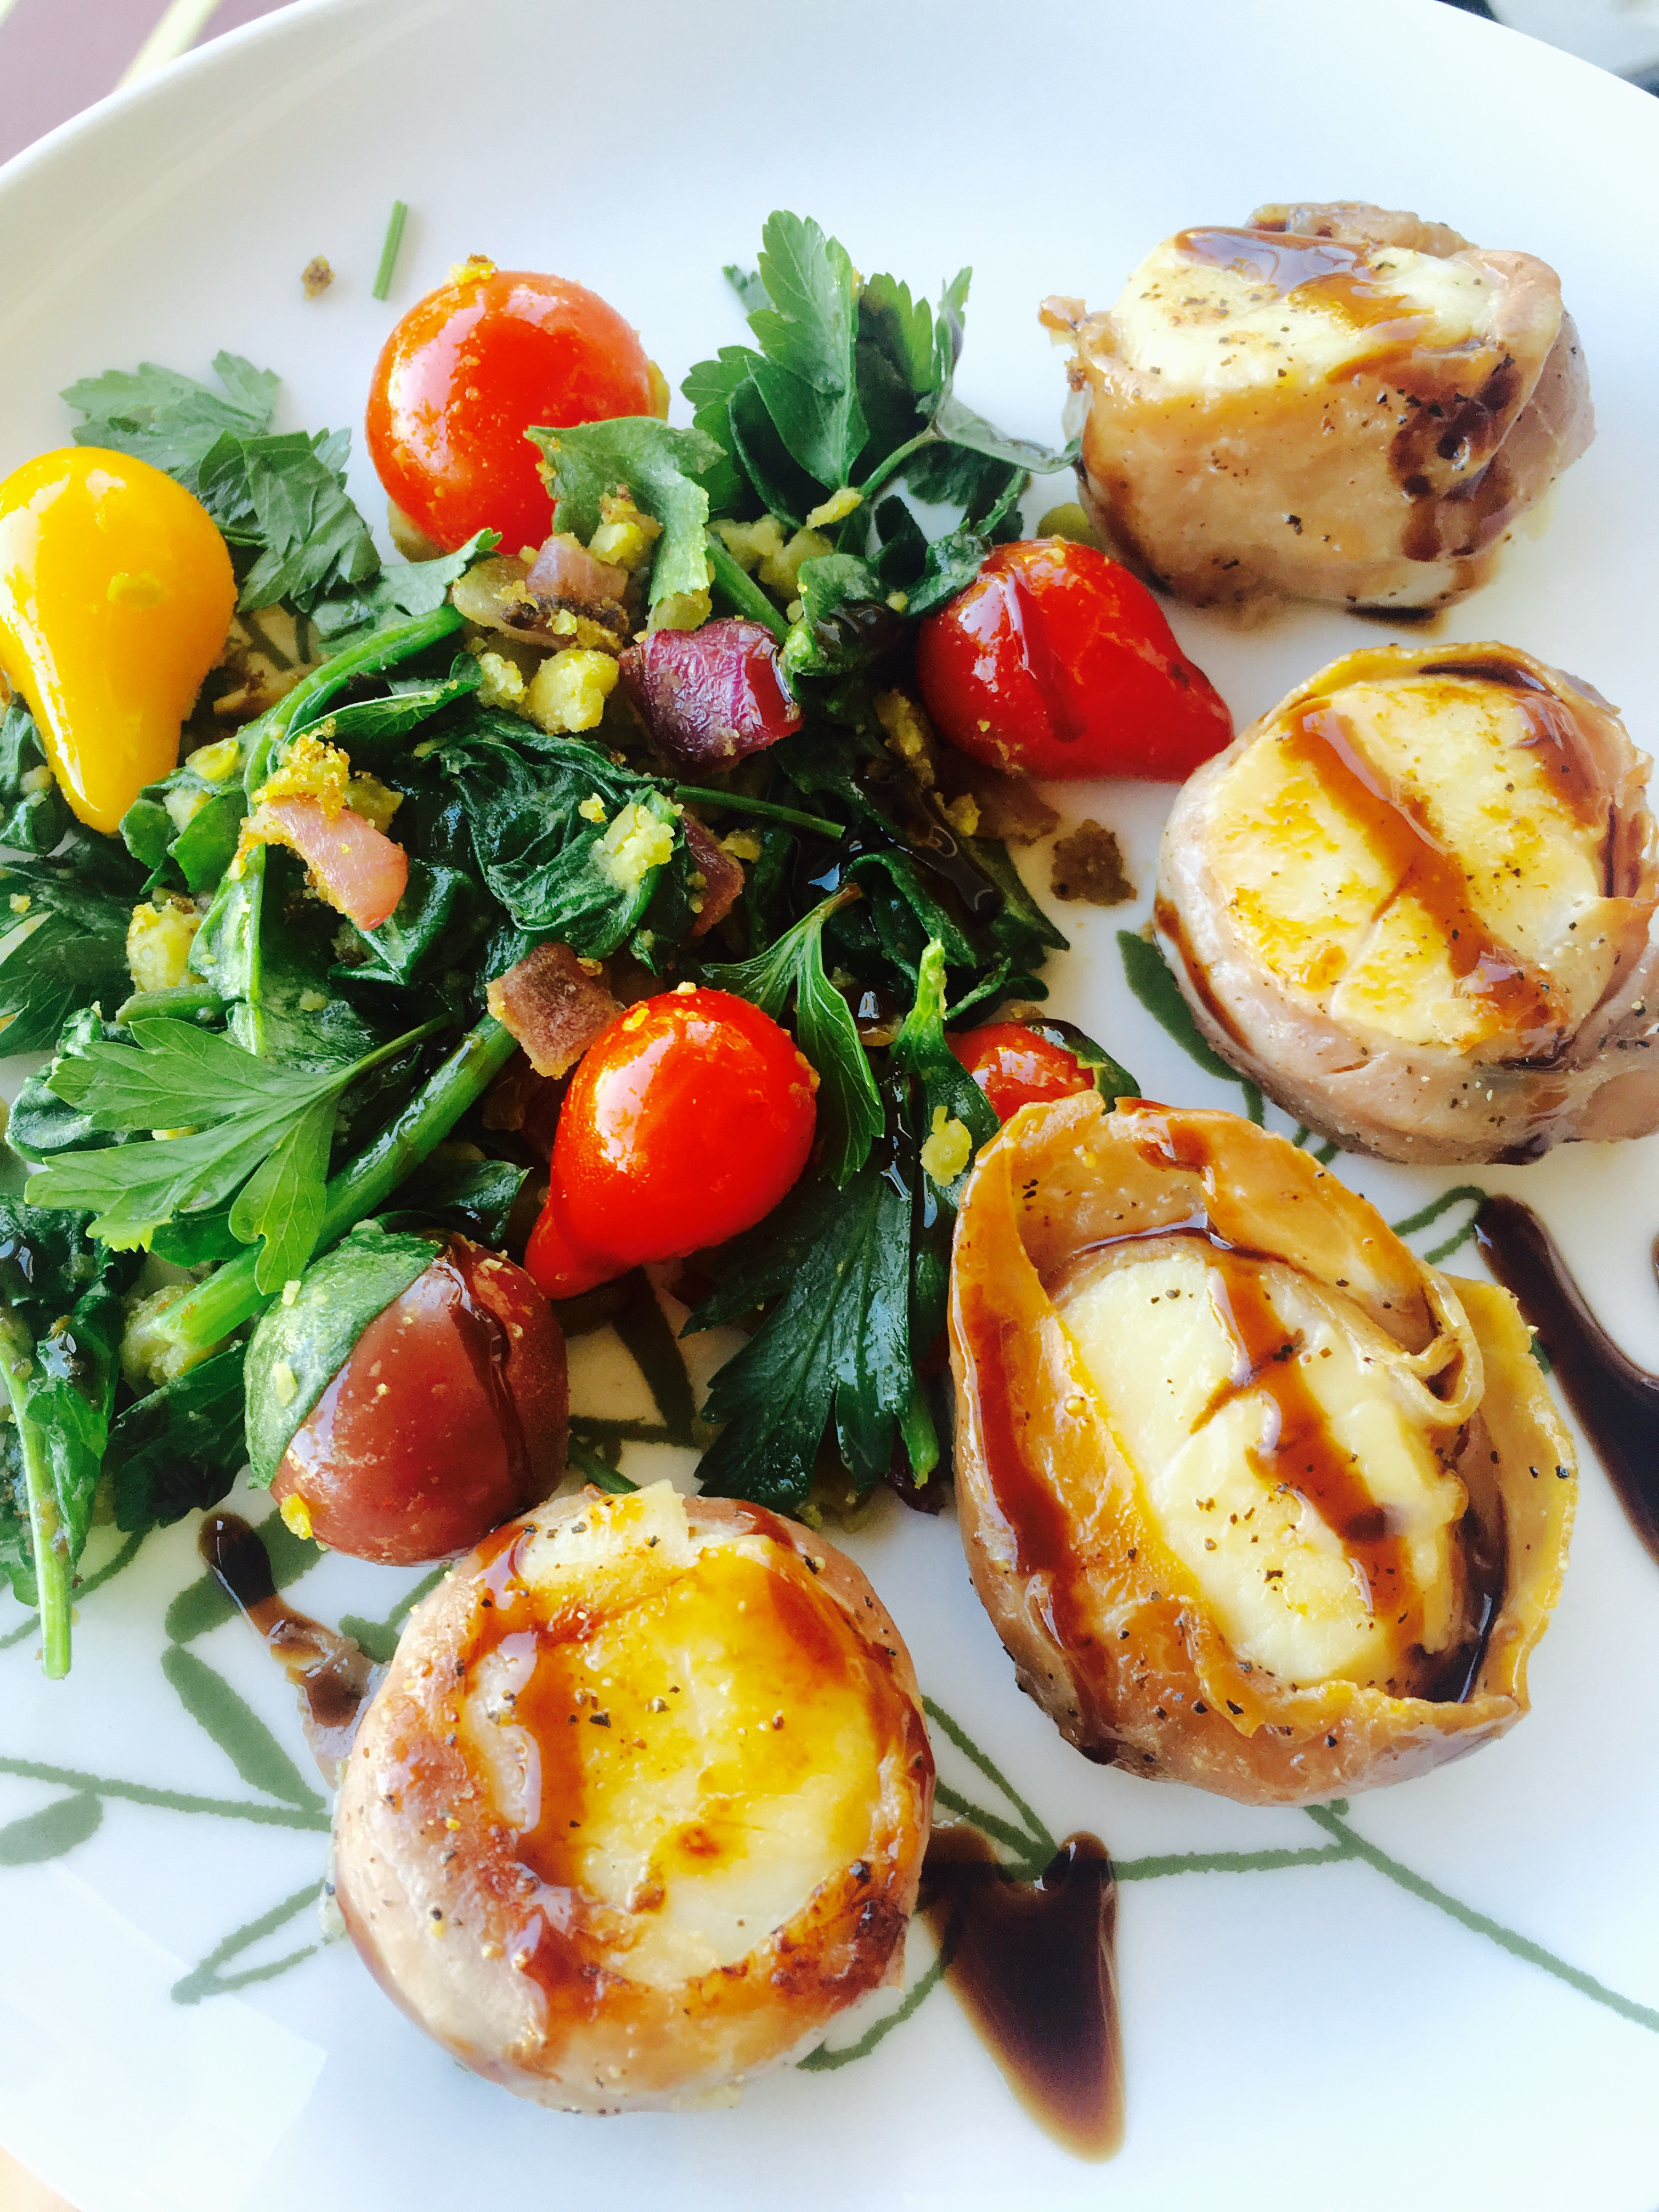 prosciutto-wrapped-scallops-with-balsamic-drizzle